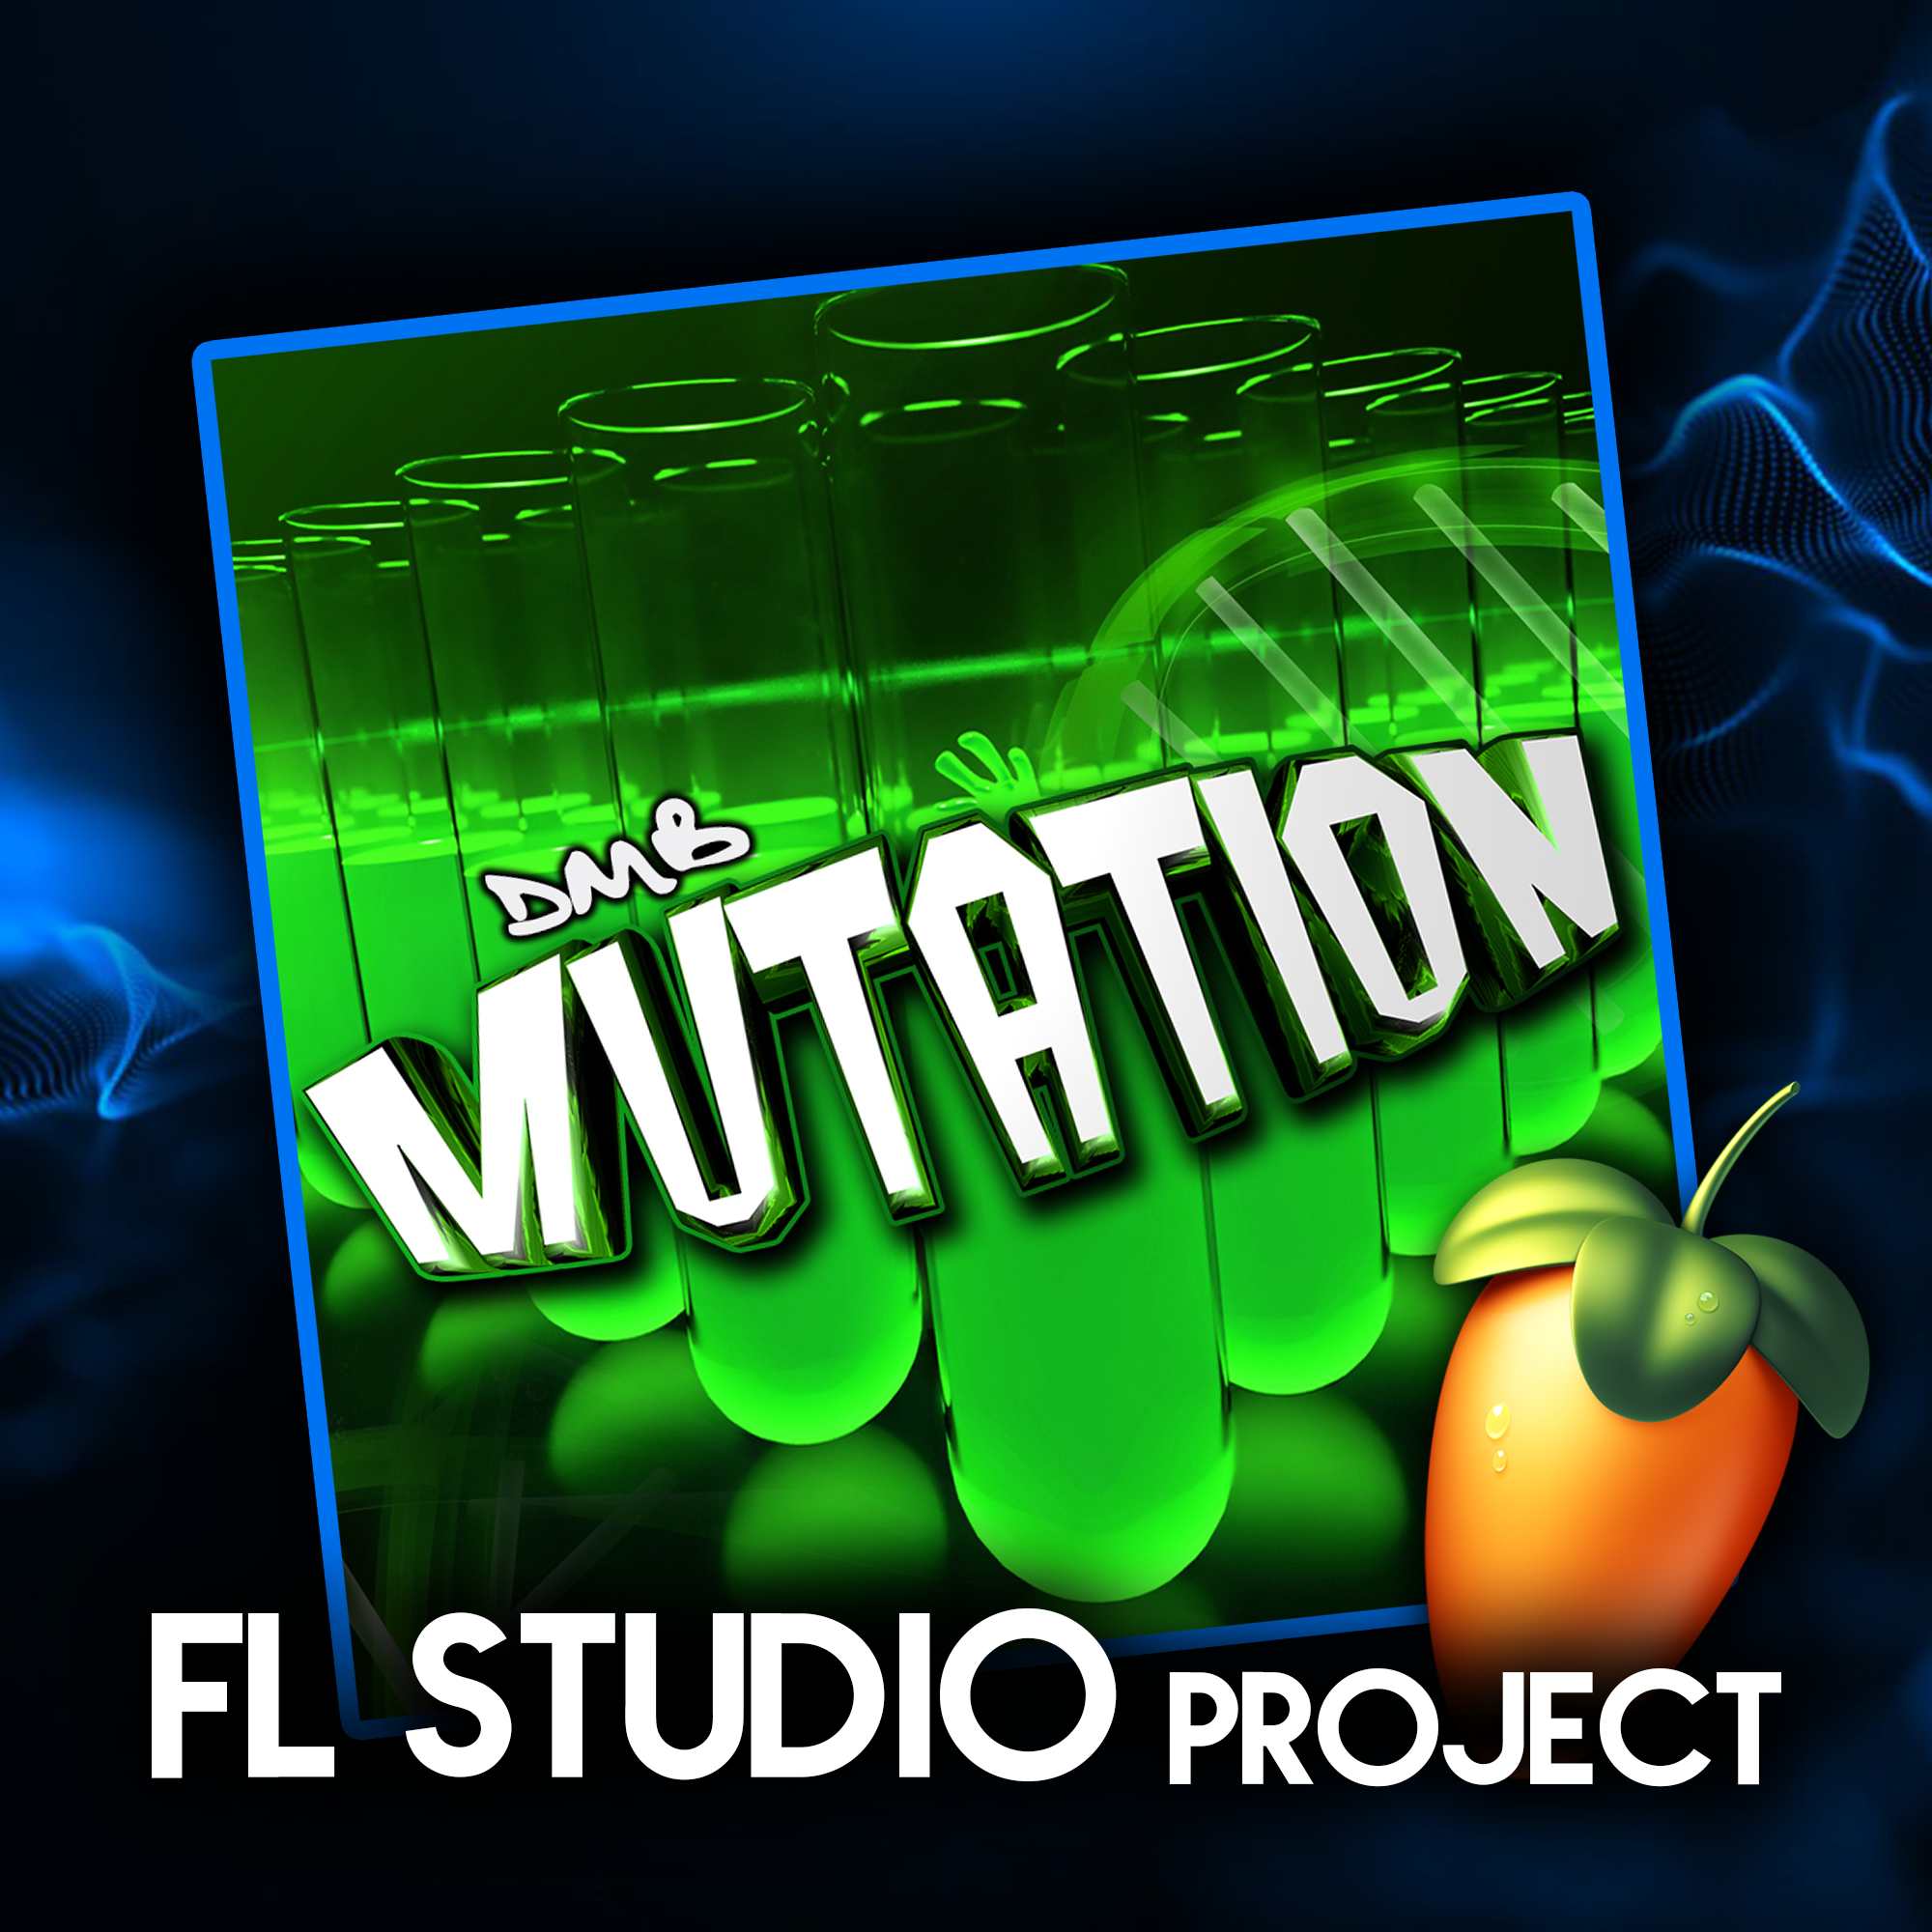 DMB - Mutation (FL Studio Project) - Rewired Records